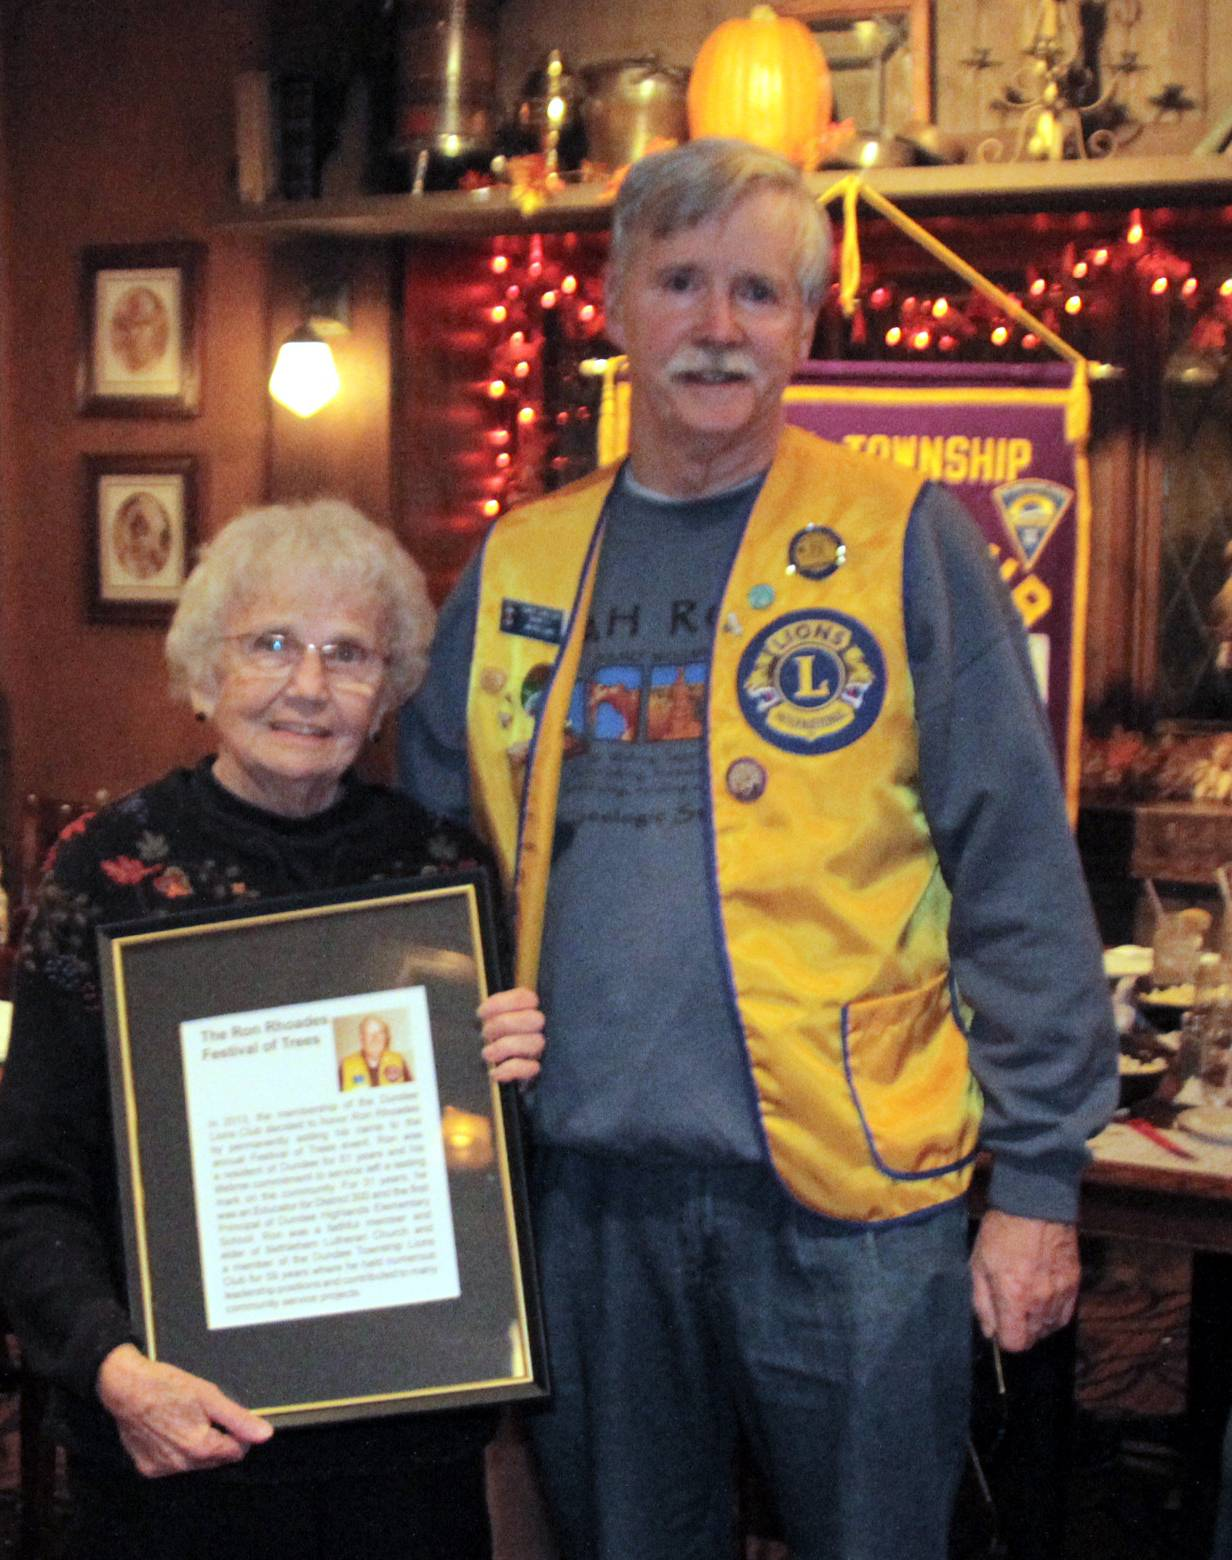 Jim McClung, Dundee Township Lions Vice President presents framed copy of sign to honor Ron Rhoades to Jeanette Rhoades, Ron's wife.